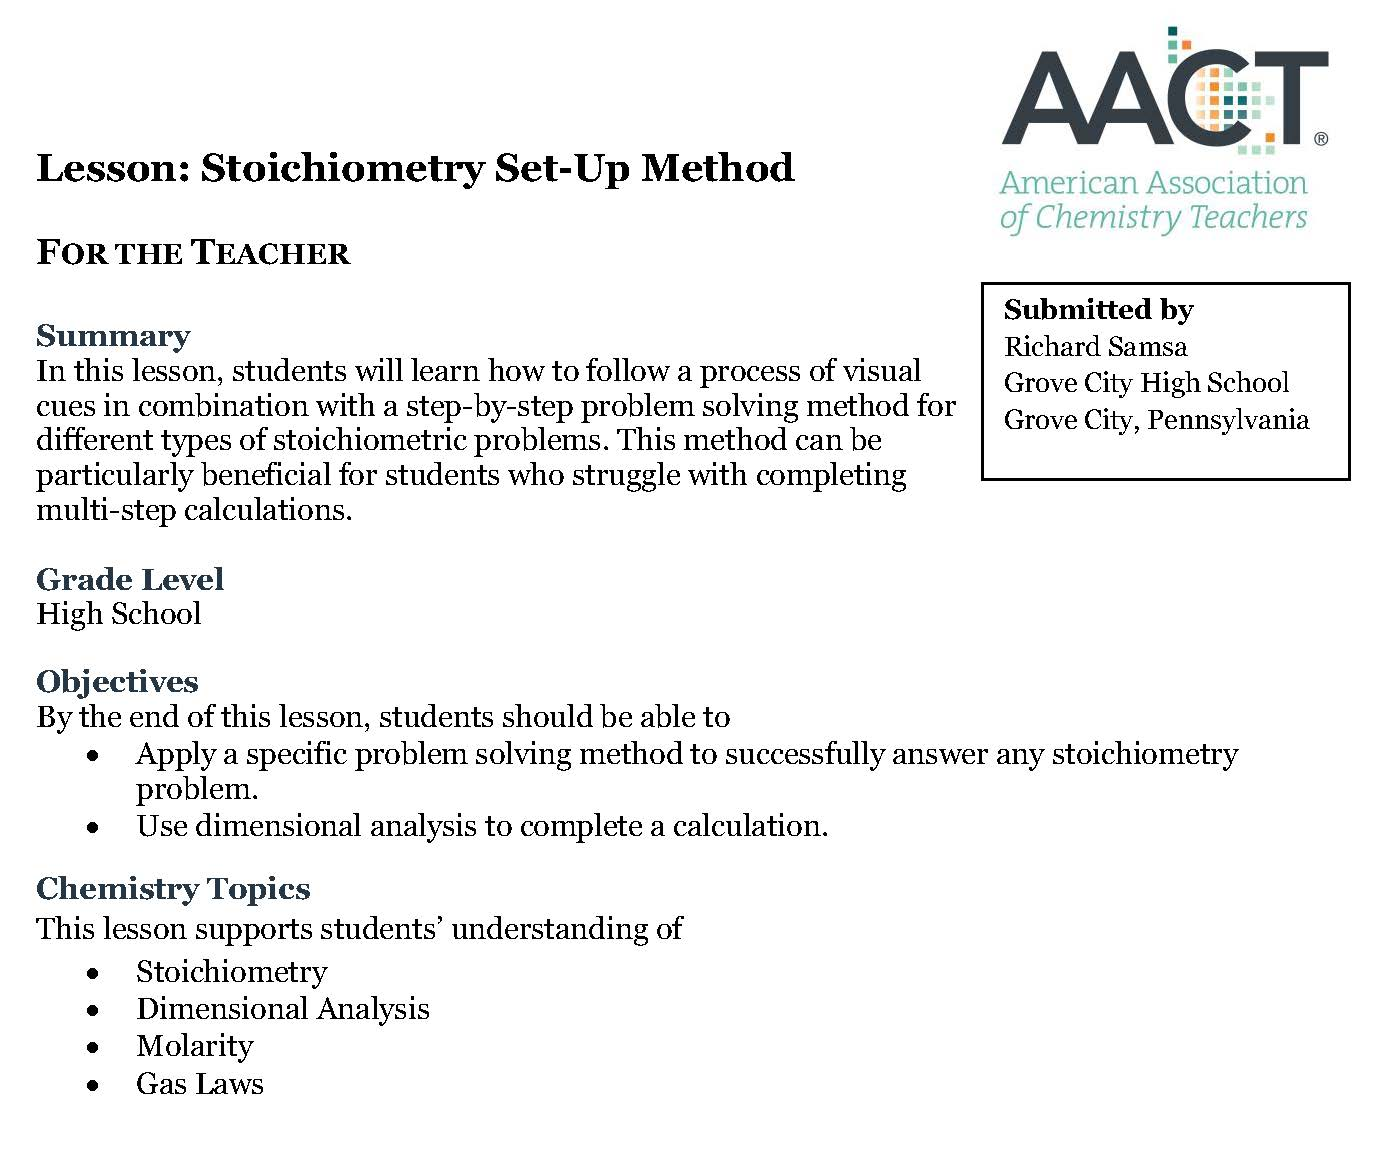 periodical stoichiometry set up method aact file